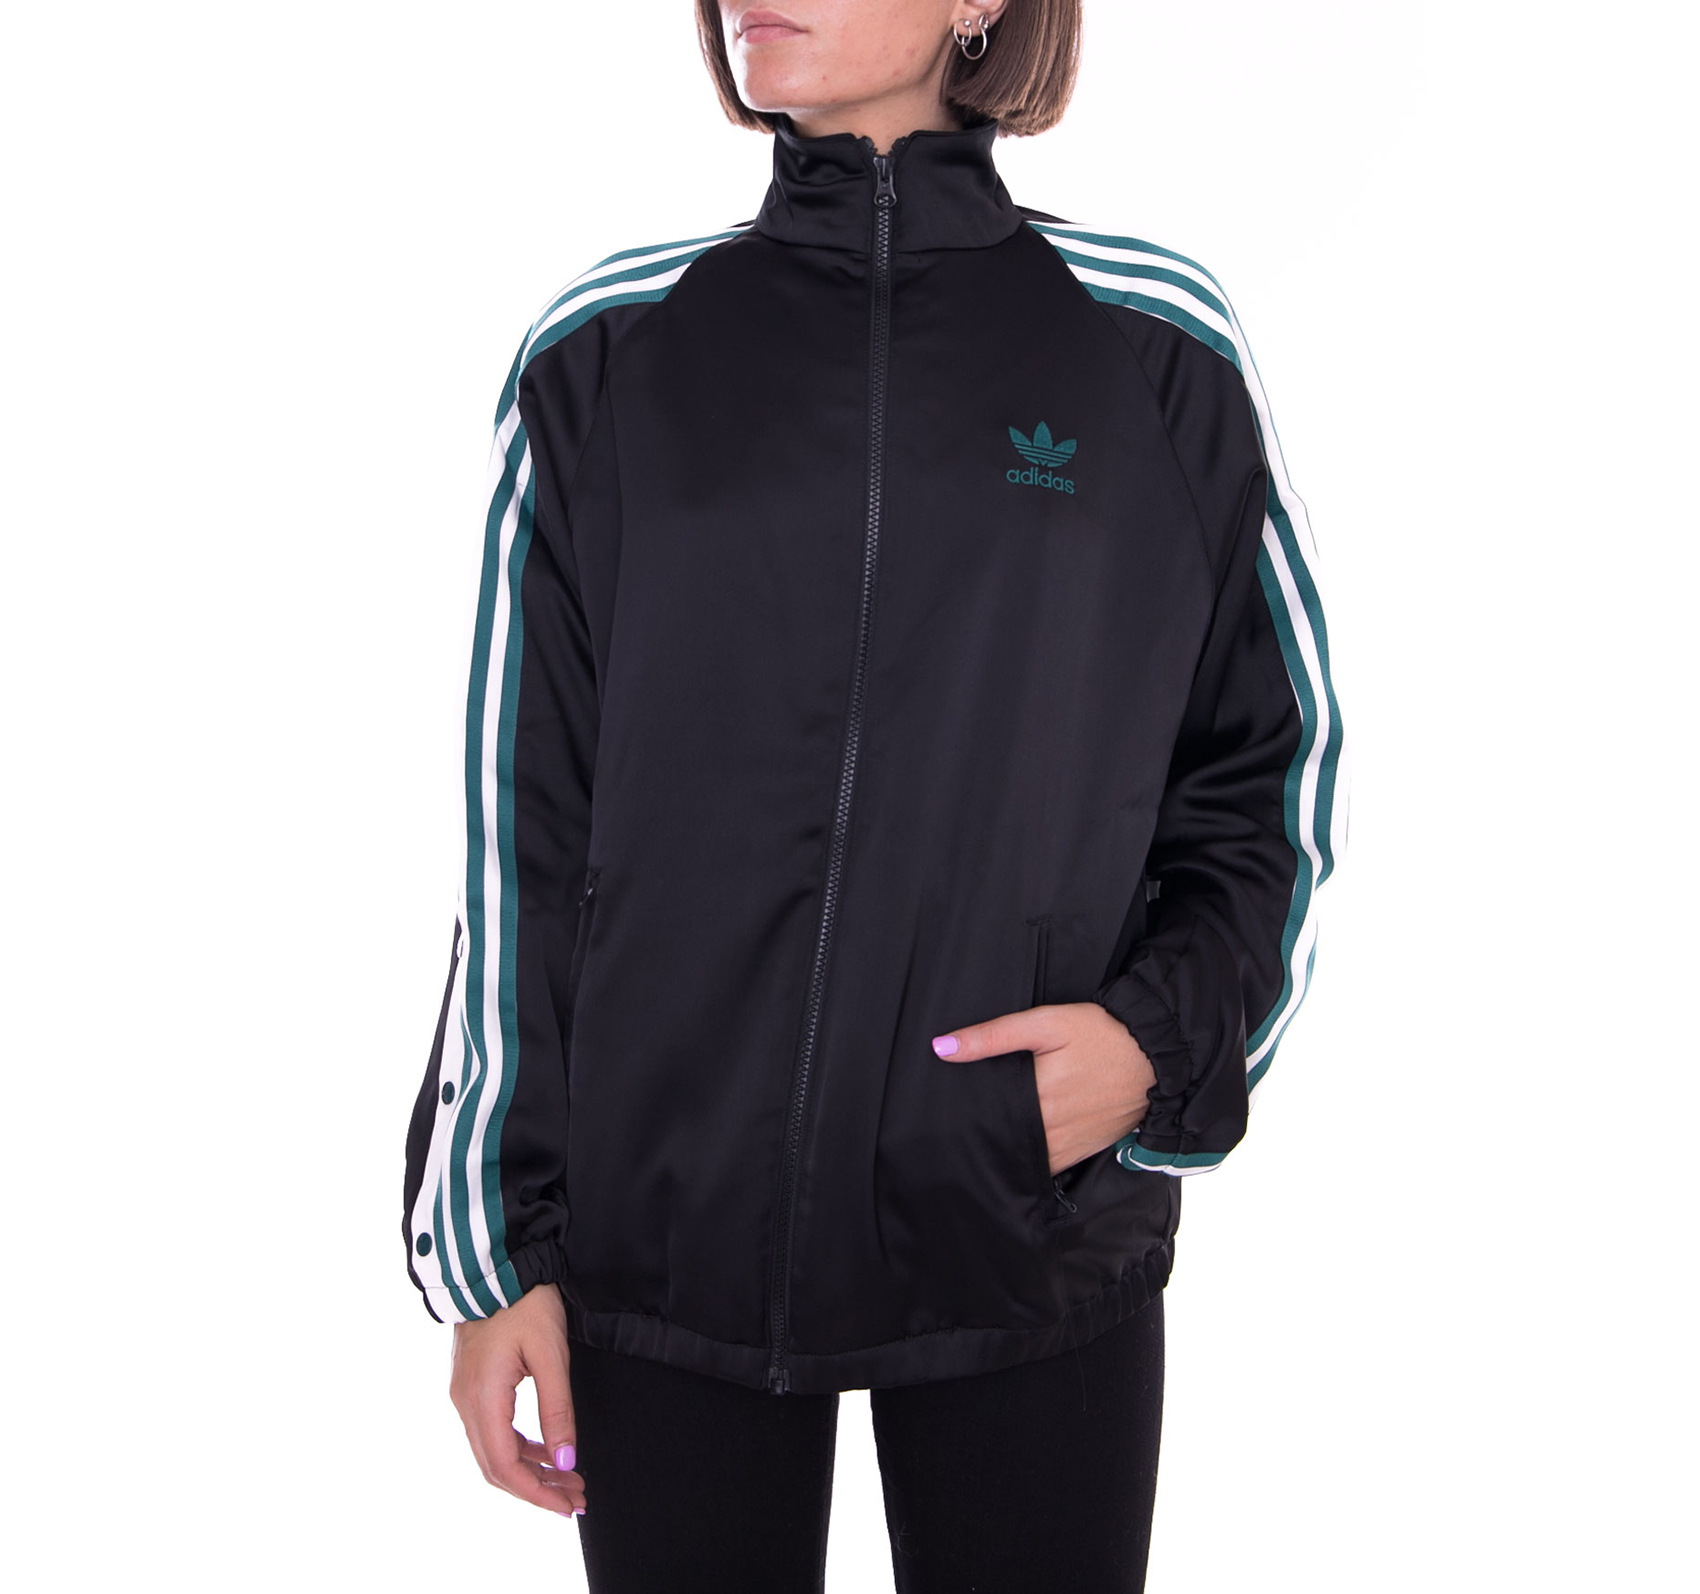 686befbb Adidas Jacket Track Top Satin Black Black | eBay